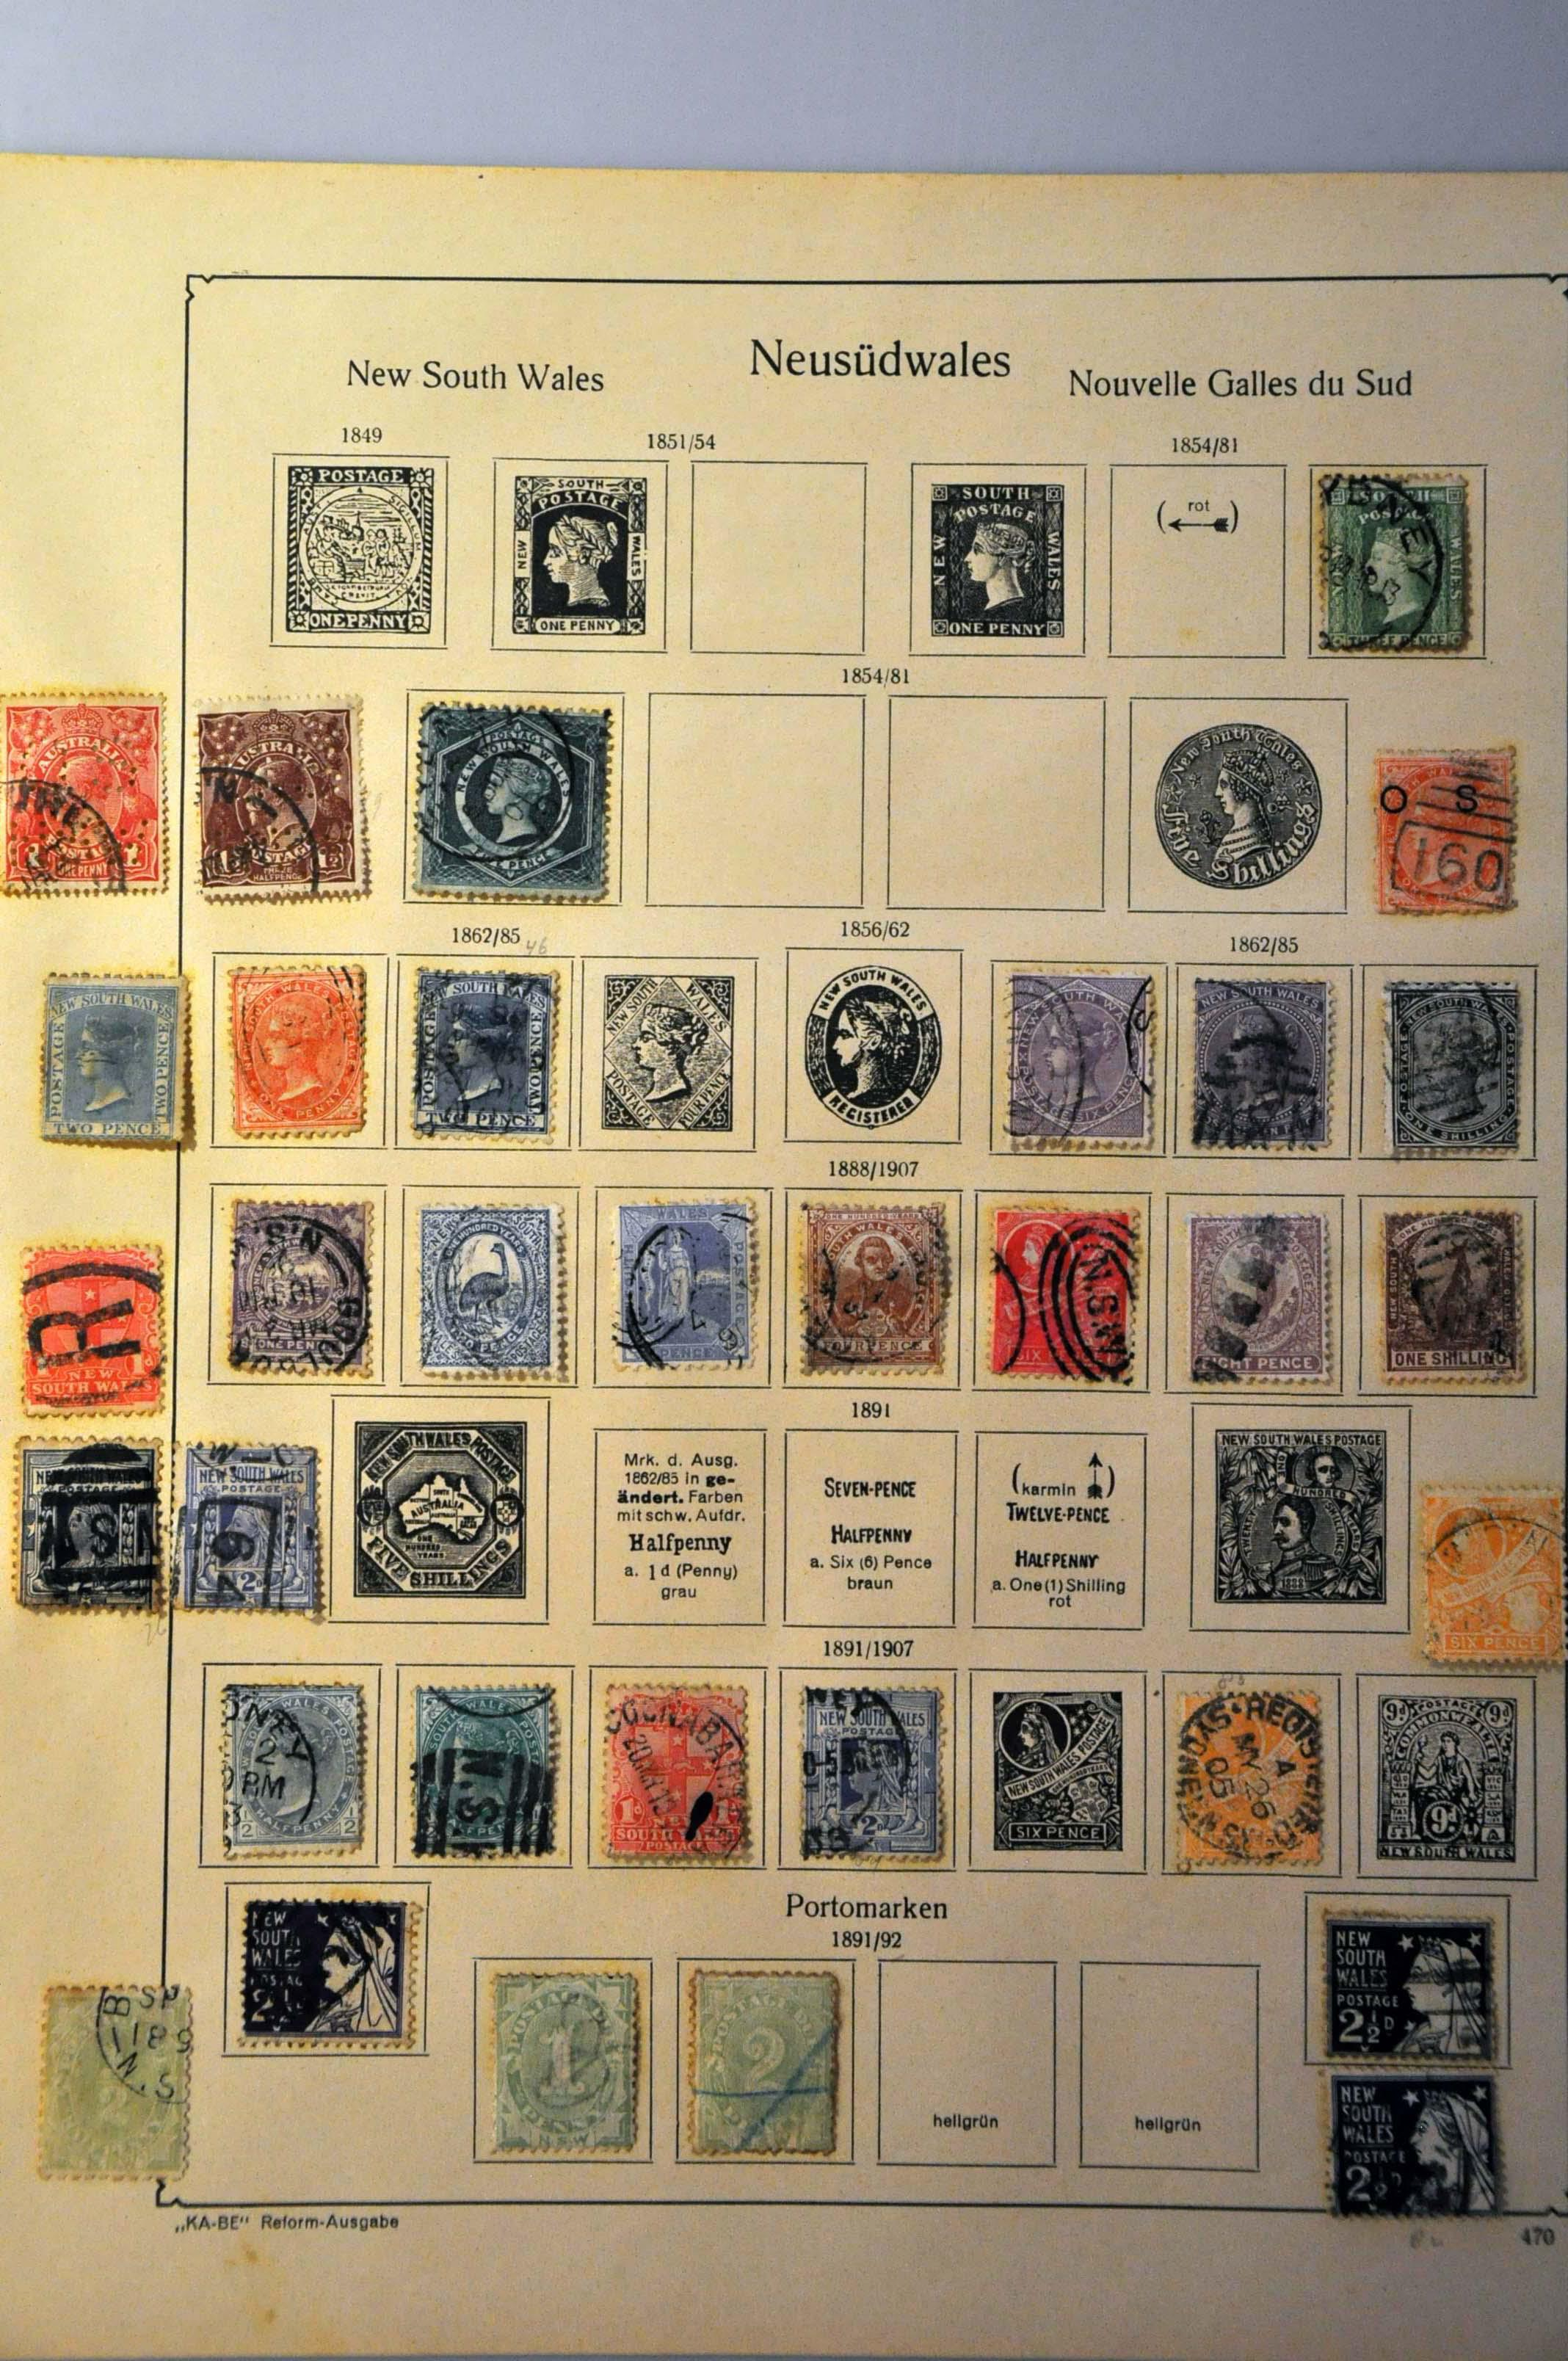 Lot 1075 - various countries world collections -  Corinphila Veilingen Auction 244 -Netherlands and former colonies, WW2 Postal History, Bosnia, German and British colonies, Egypt. - Day 1